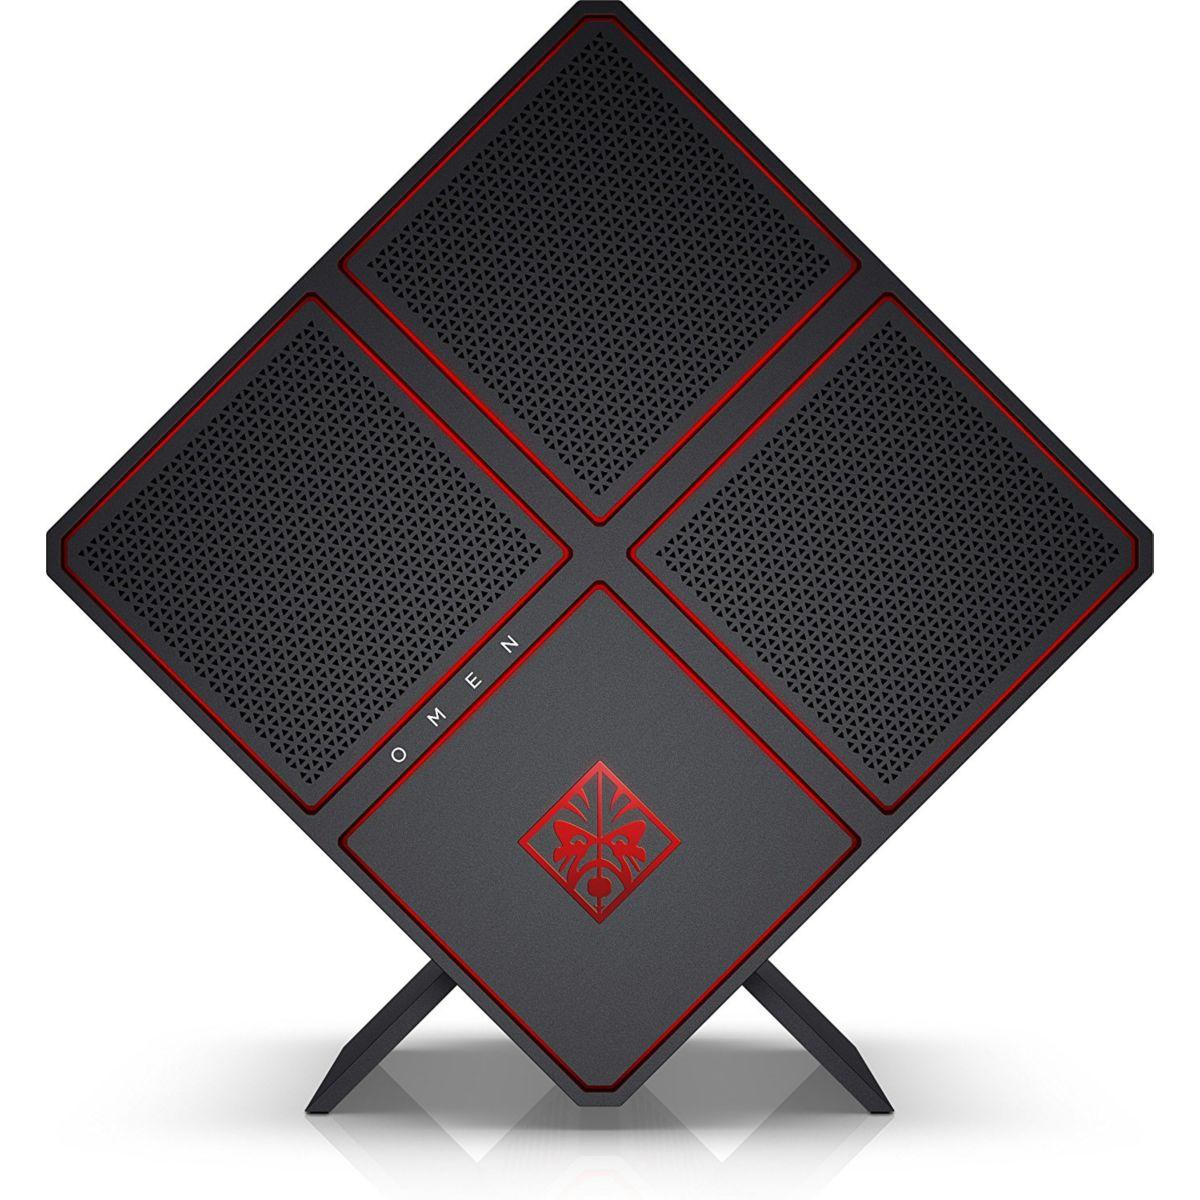 Pc gamer hp omen x 900-203nf